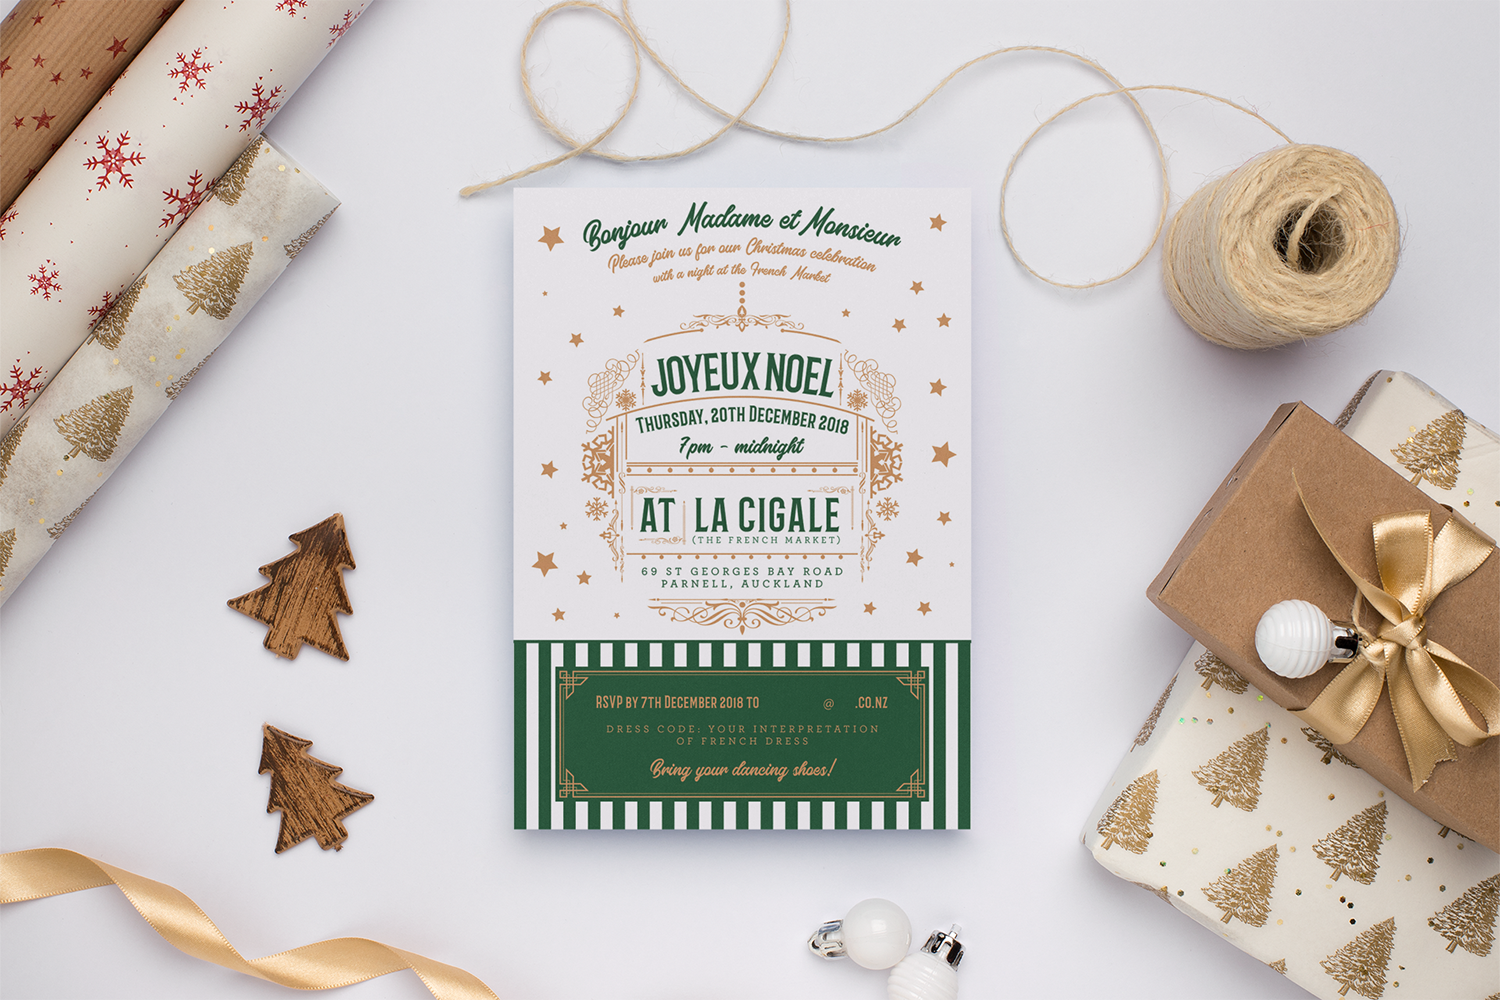 classy-christmas-greeting-card-mockup-with-ornaments-CHH-web.png